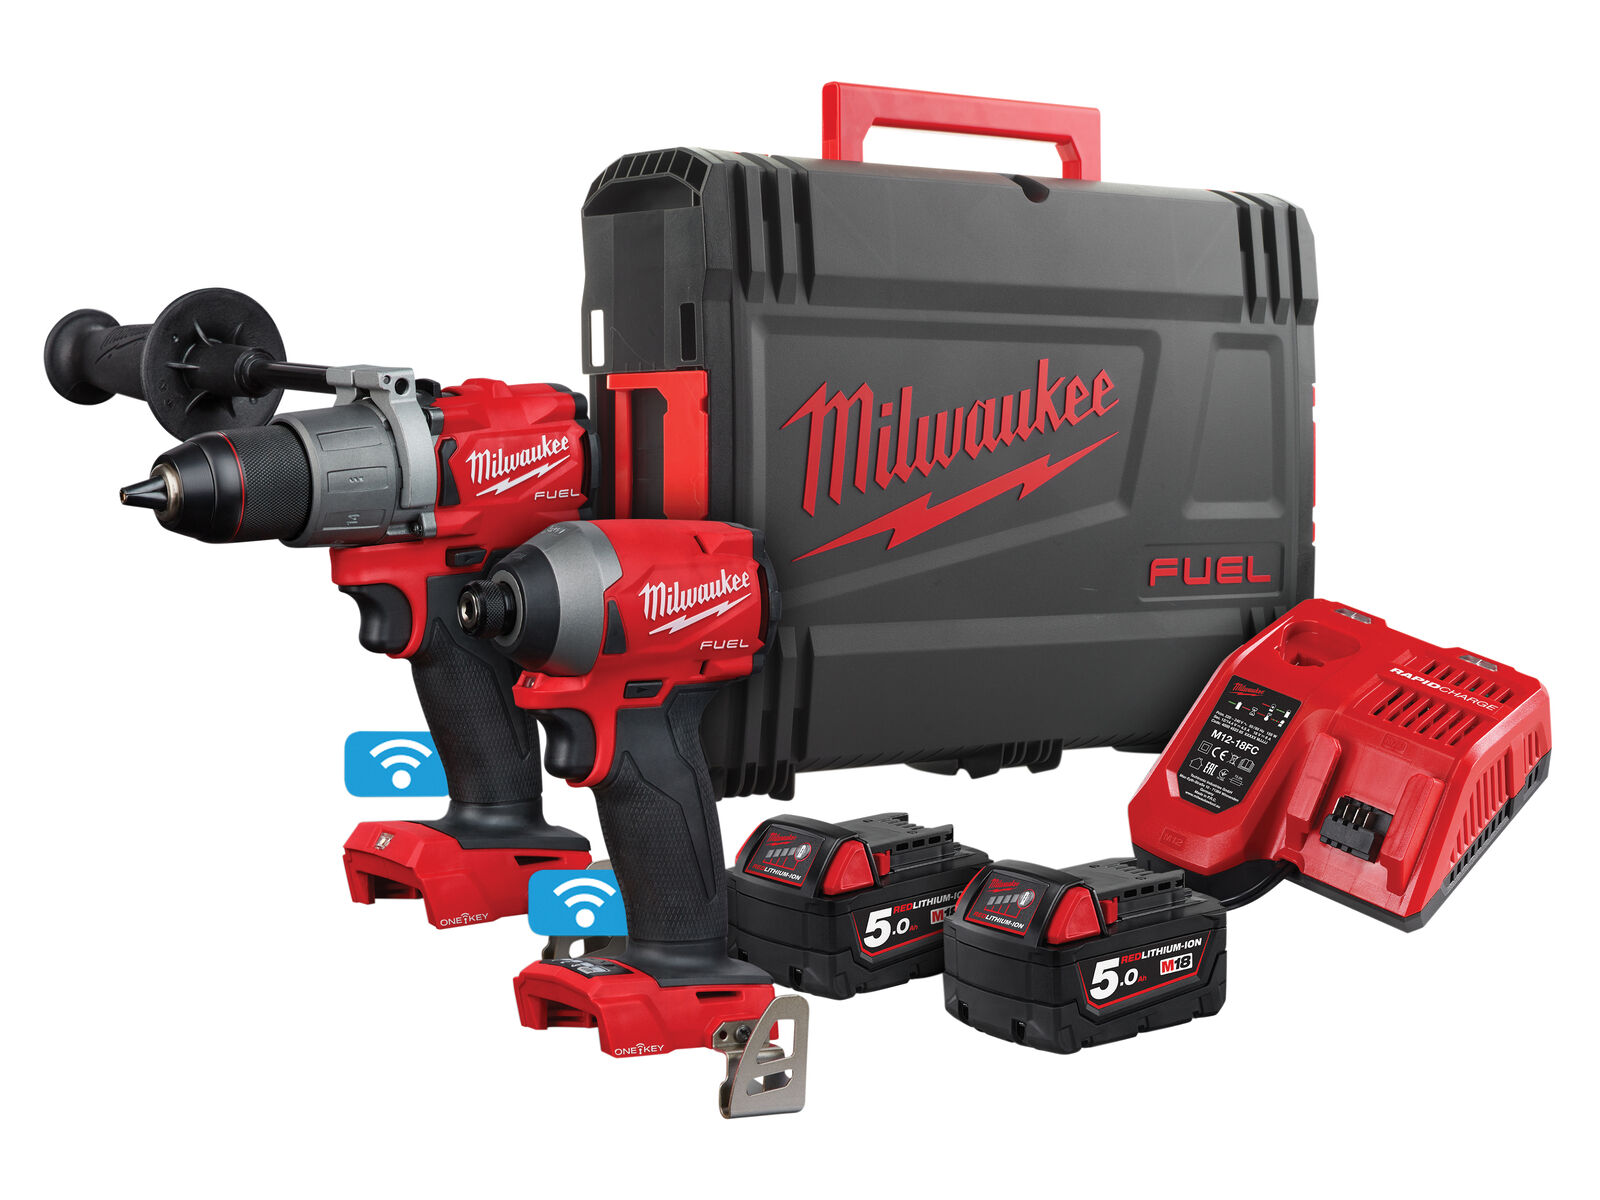 Milwaukee ONE-KEY 18V FUEL Combi Drill & Impact Driver Twin Pack - 5.0ah Pack